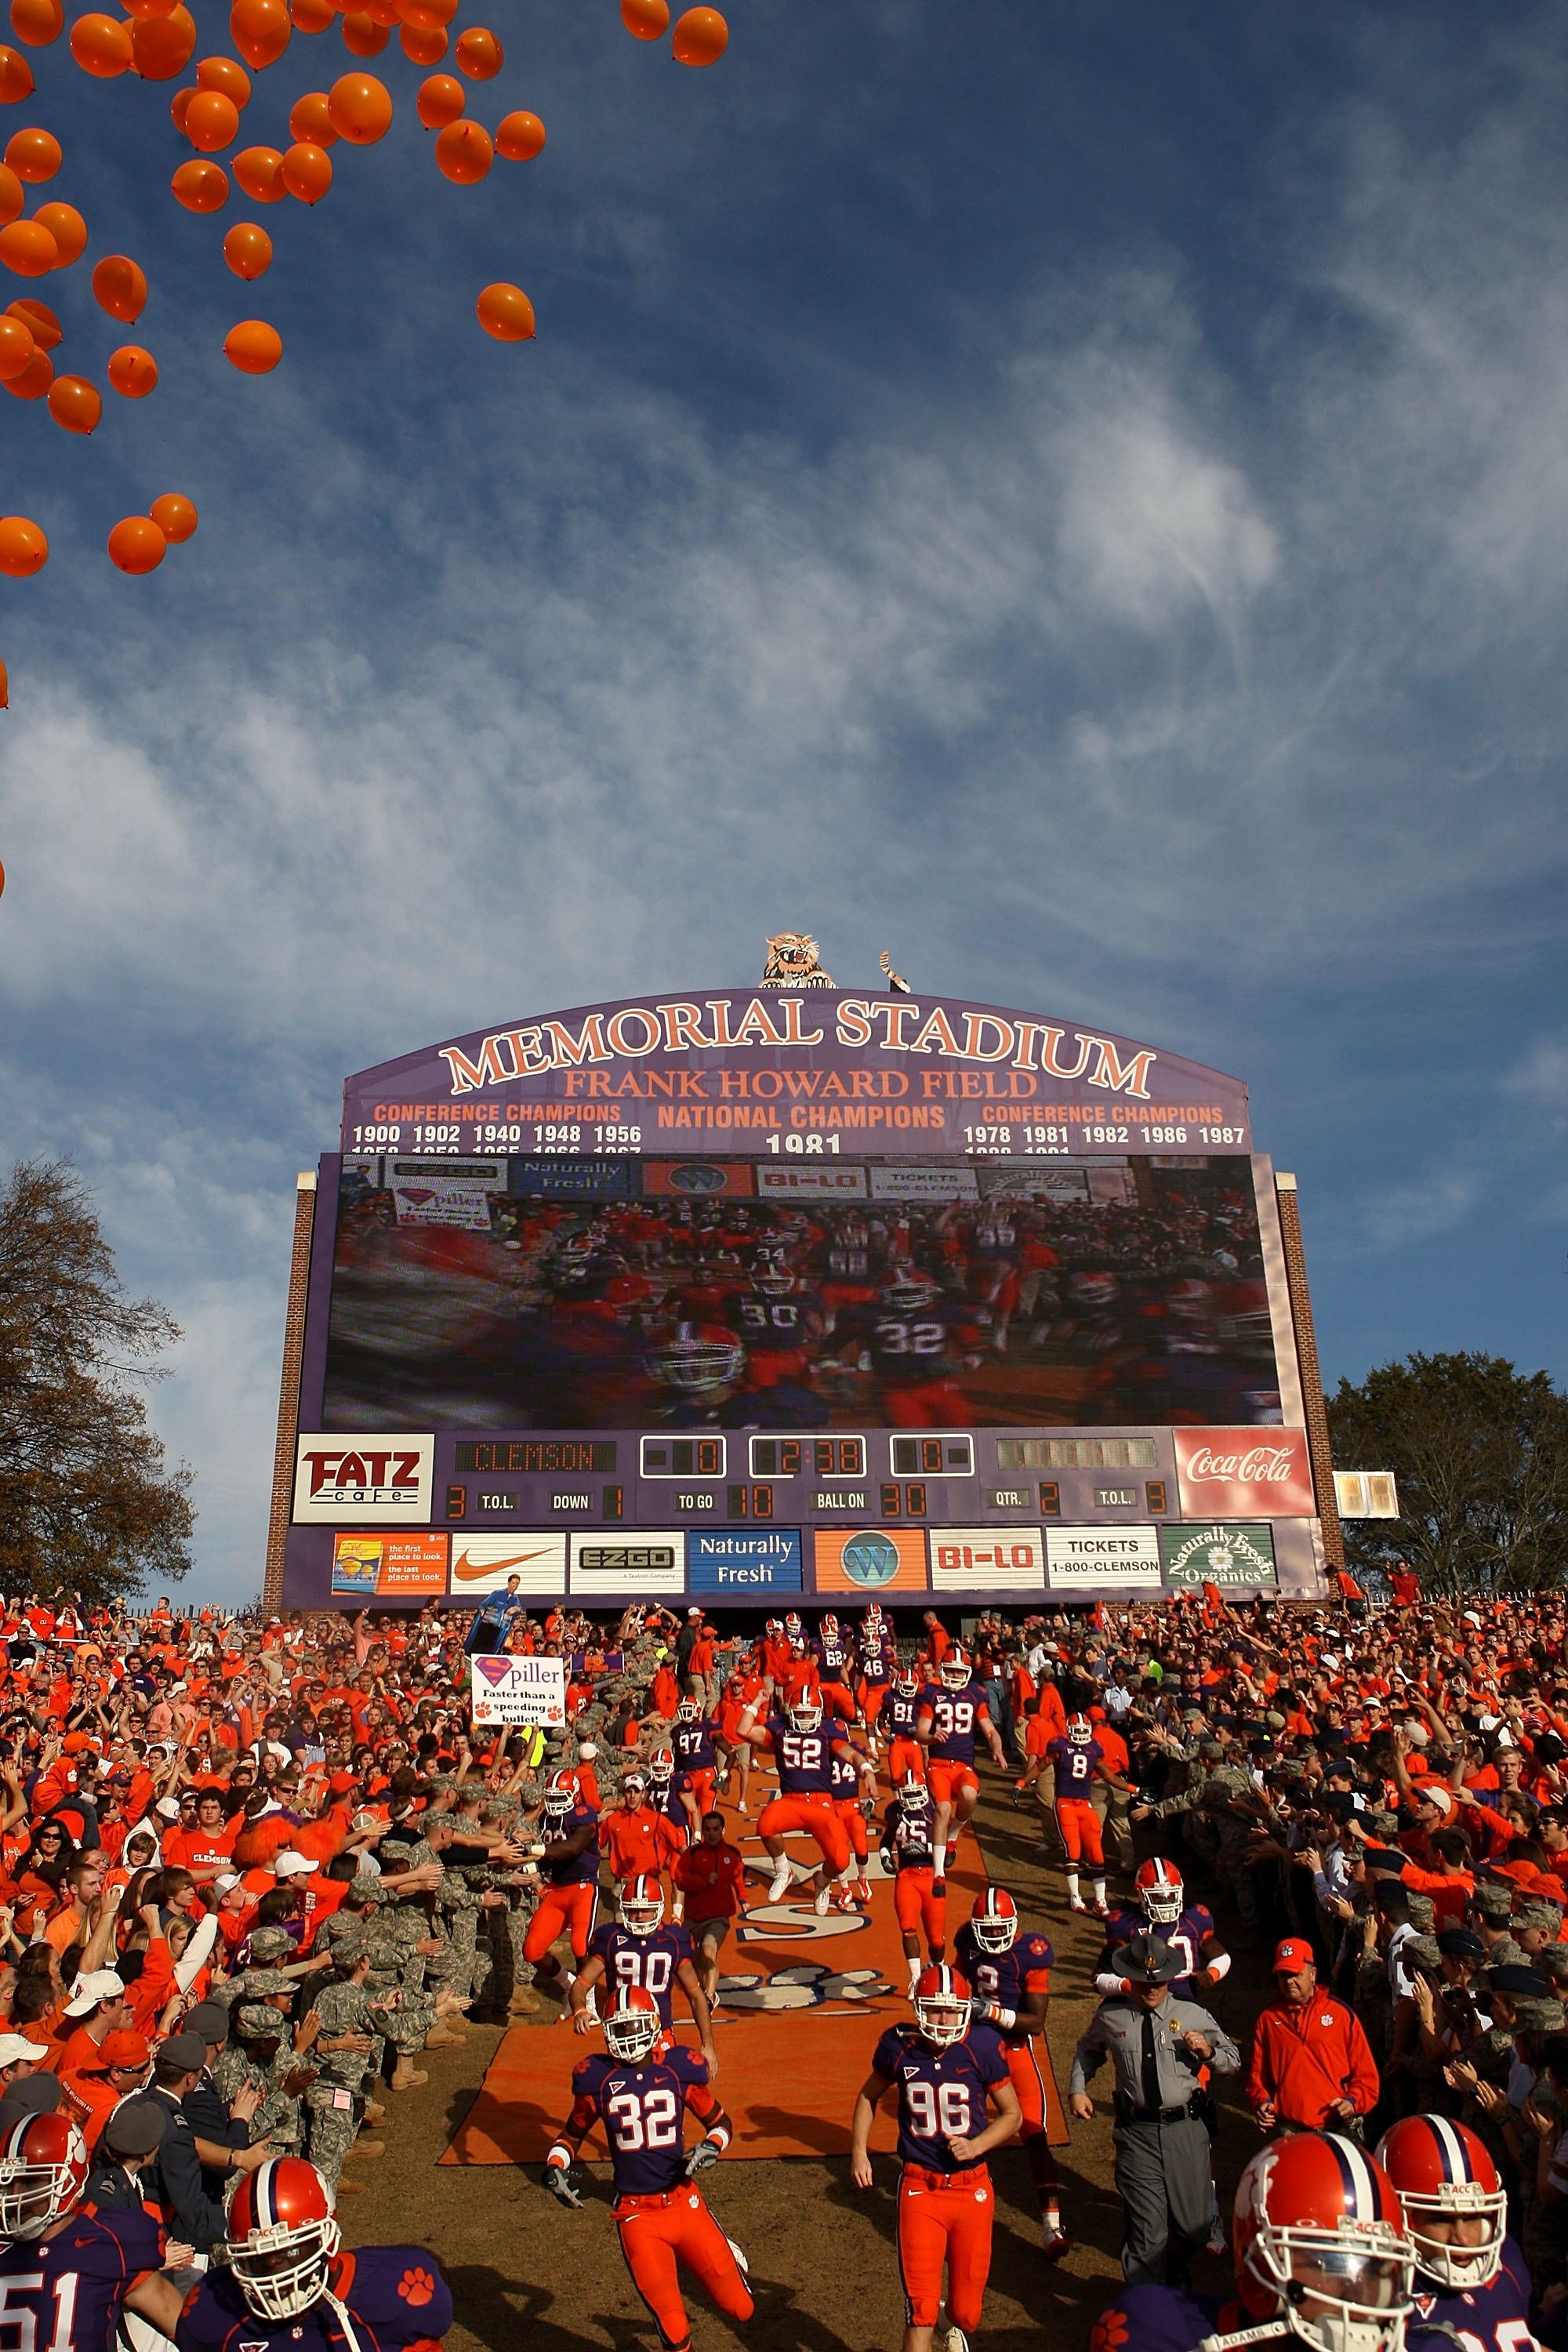 15d5a737416 CLEMSON, SC - NOVEMBER 21: Clemson Tigers players run onto the field with  the